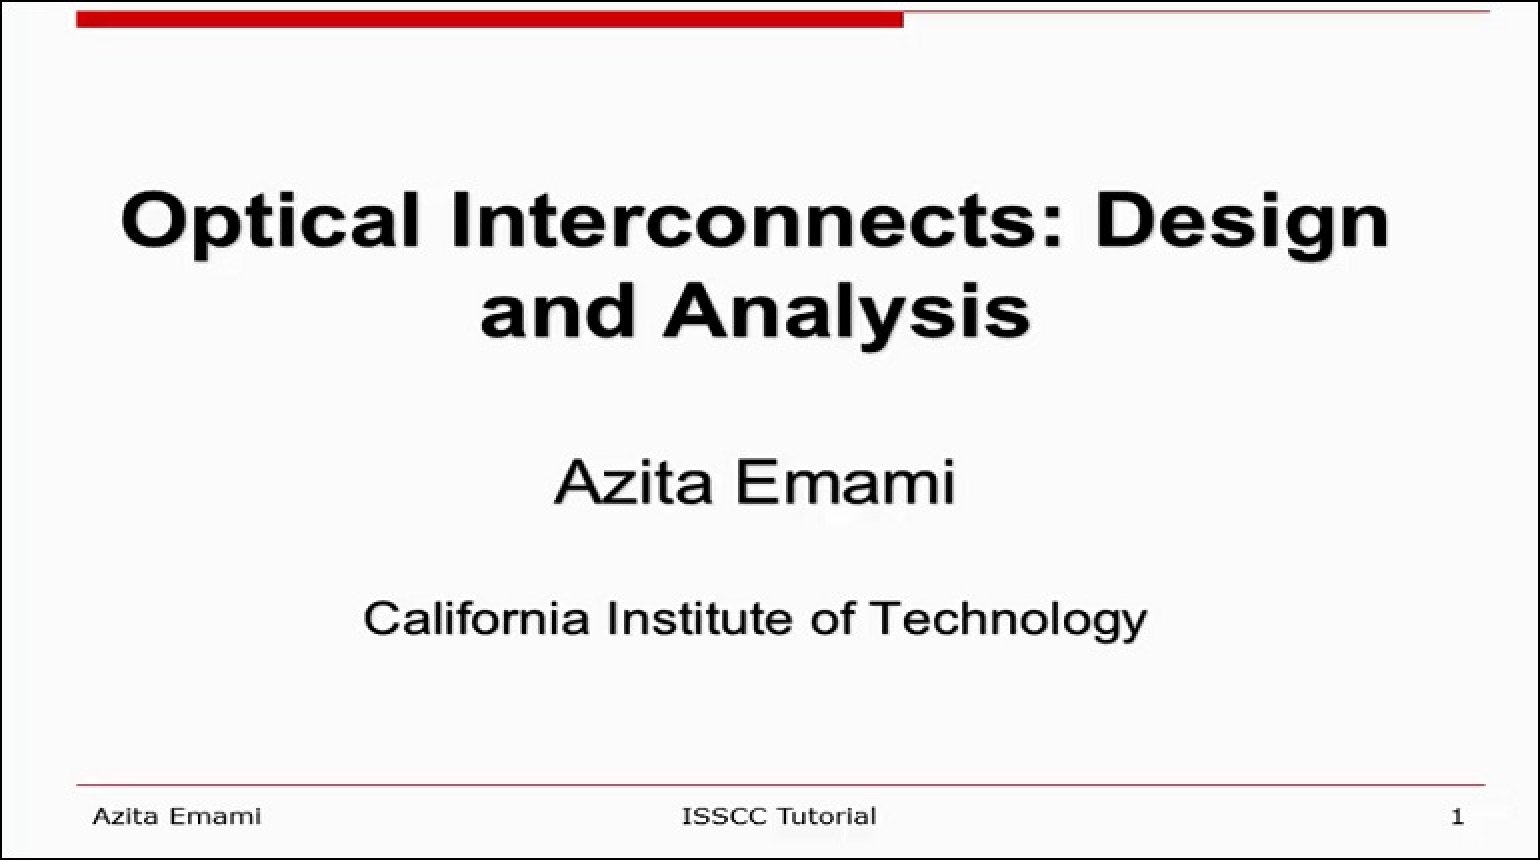 Optical Interconnects: Design and Analysis Video